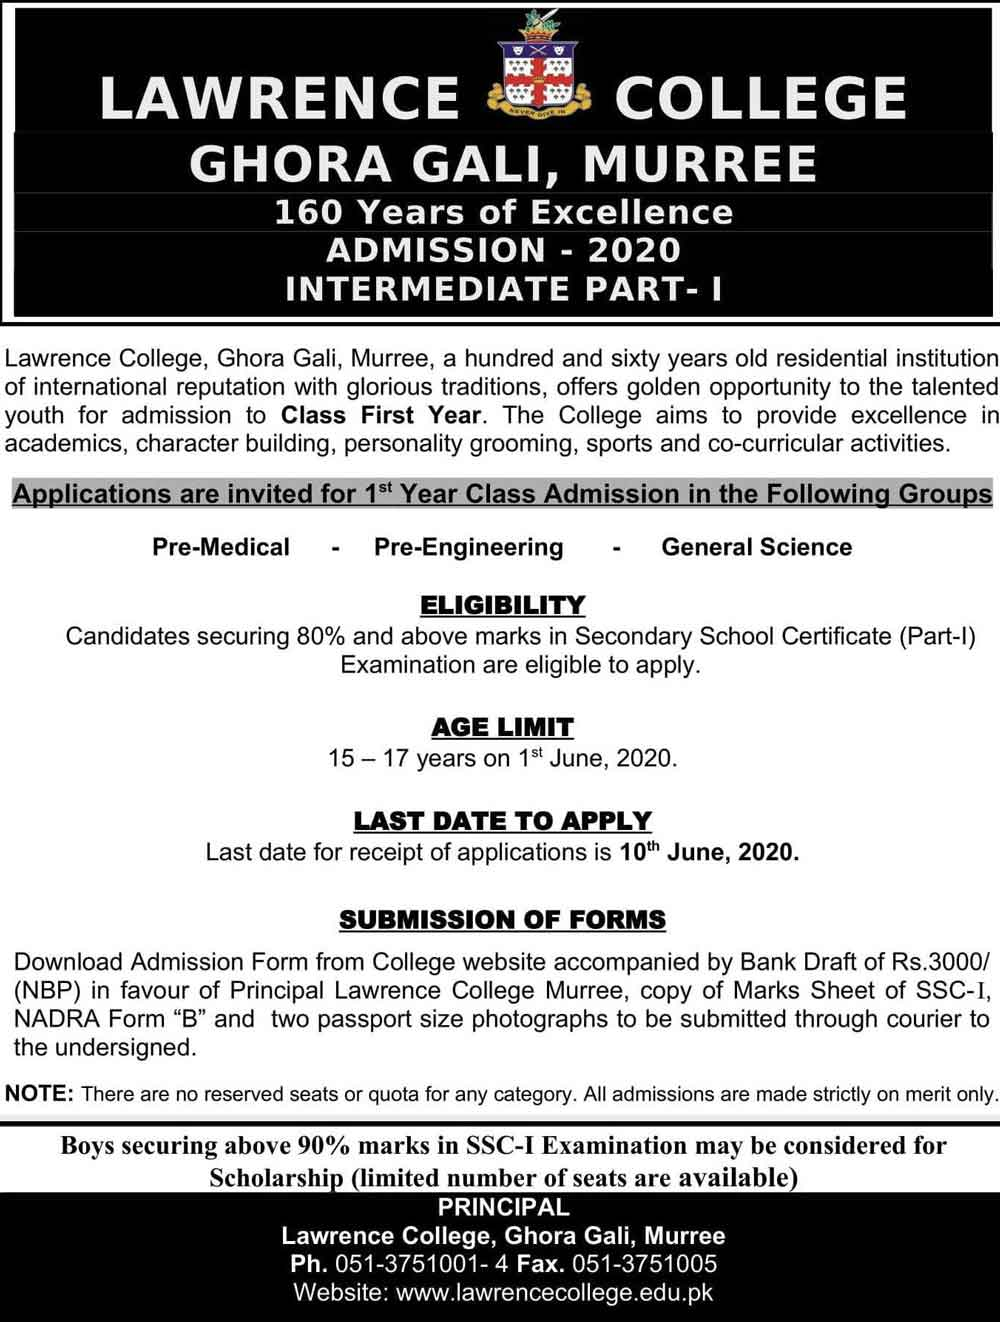 Lawrence-College-Ghora-Gali-Murree-Admission-2020